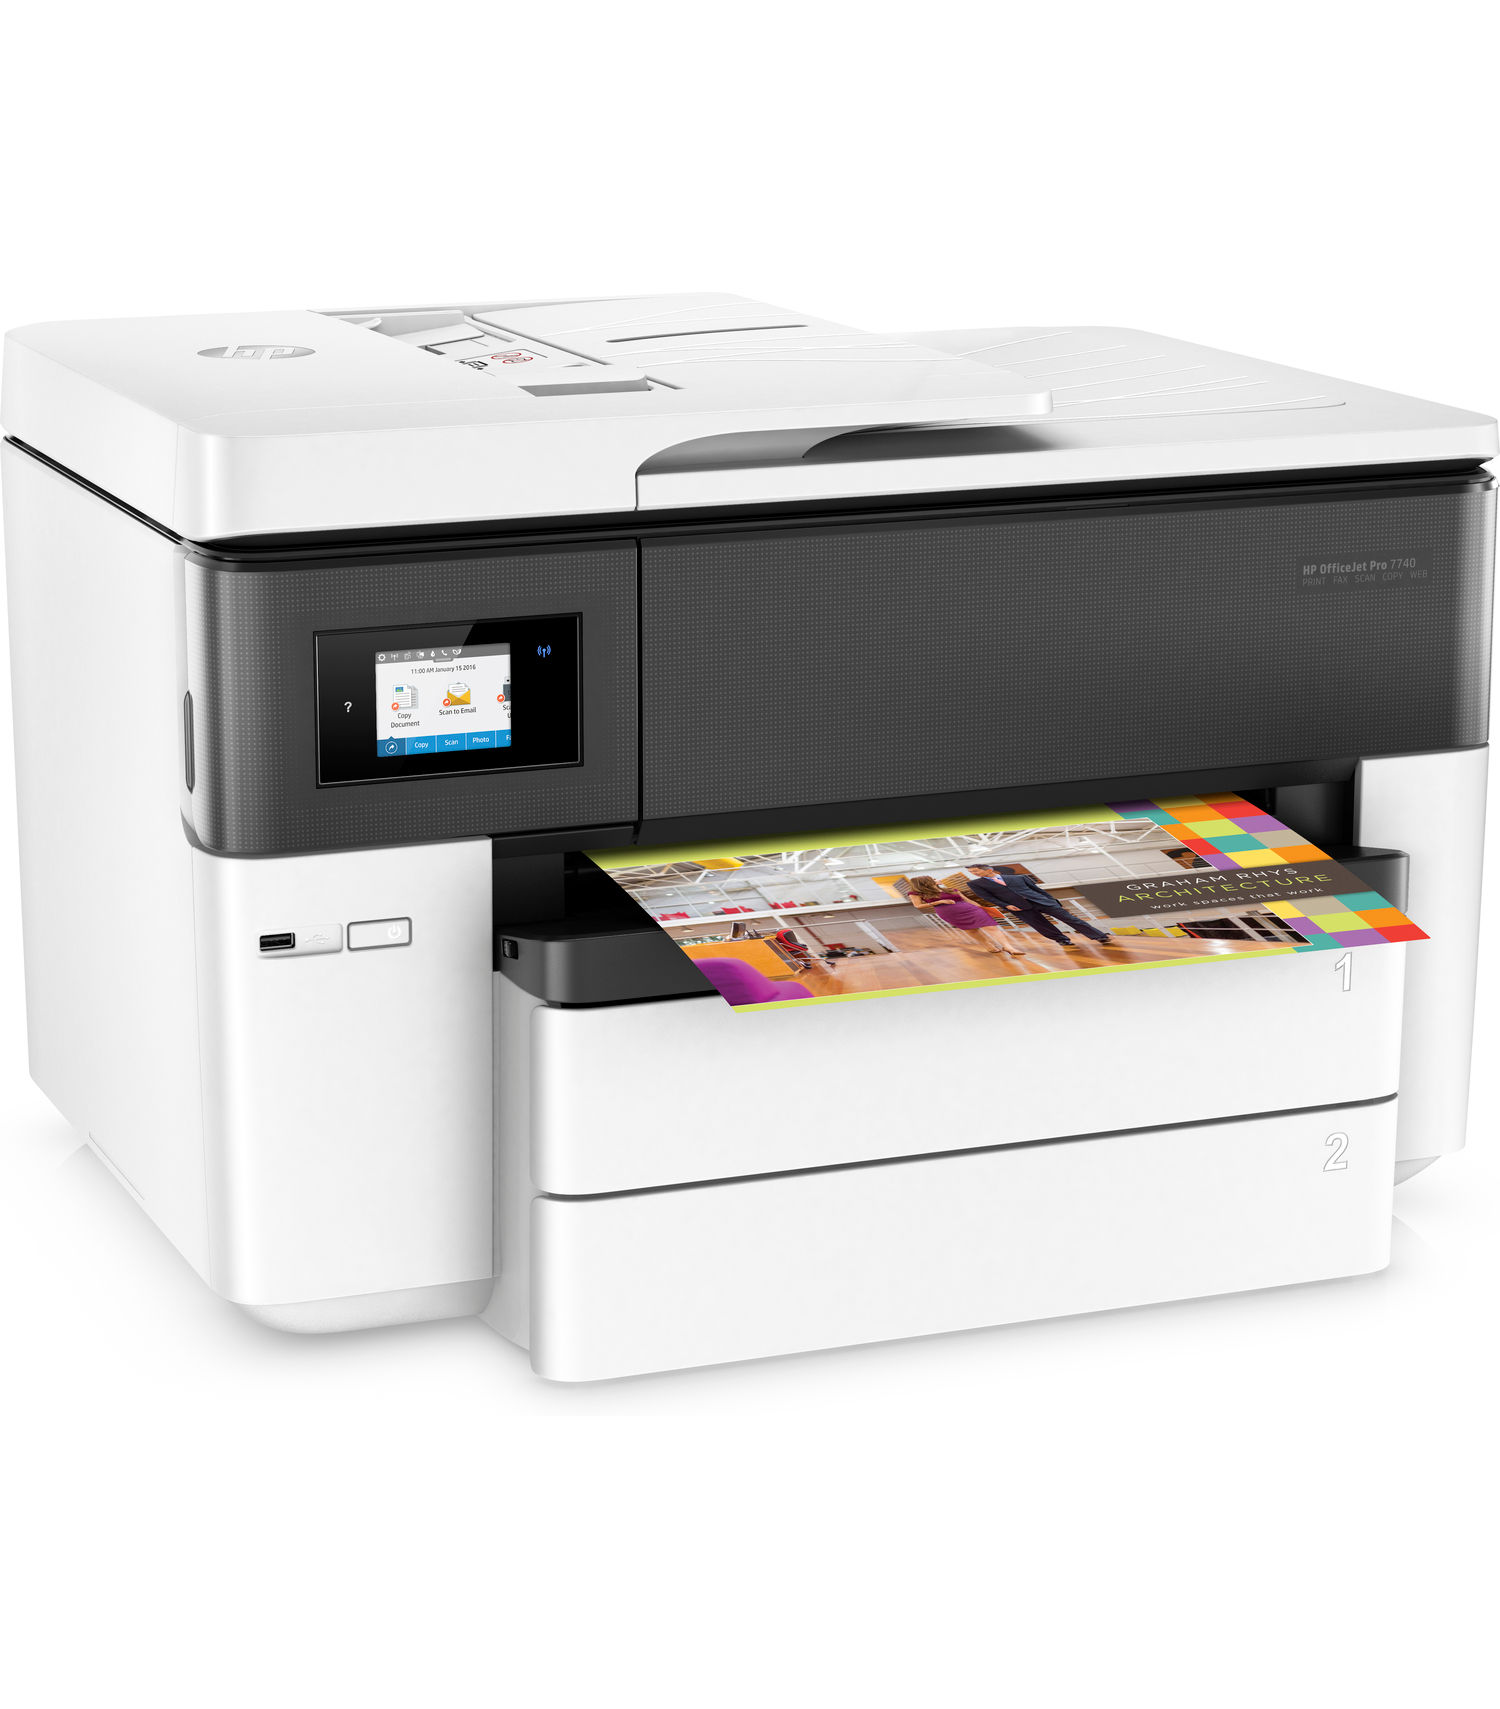 HP OfficeJet Pro 7740 Wide Format All-in-One Printer with Mobile Printing, in White (Certified Refurbished) by HP